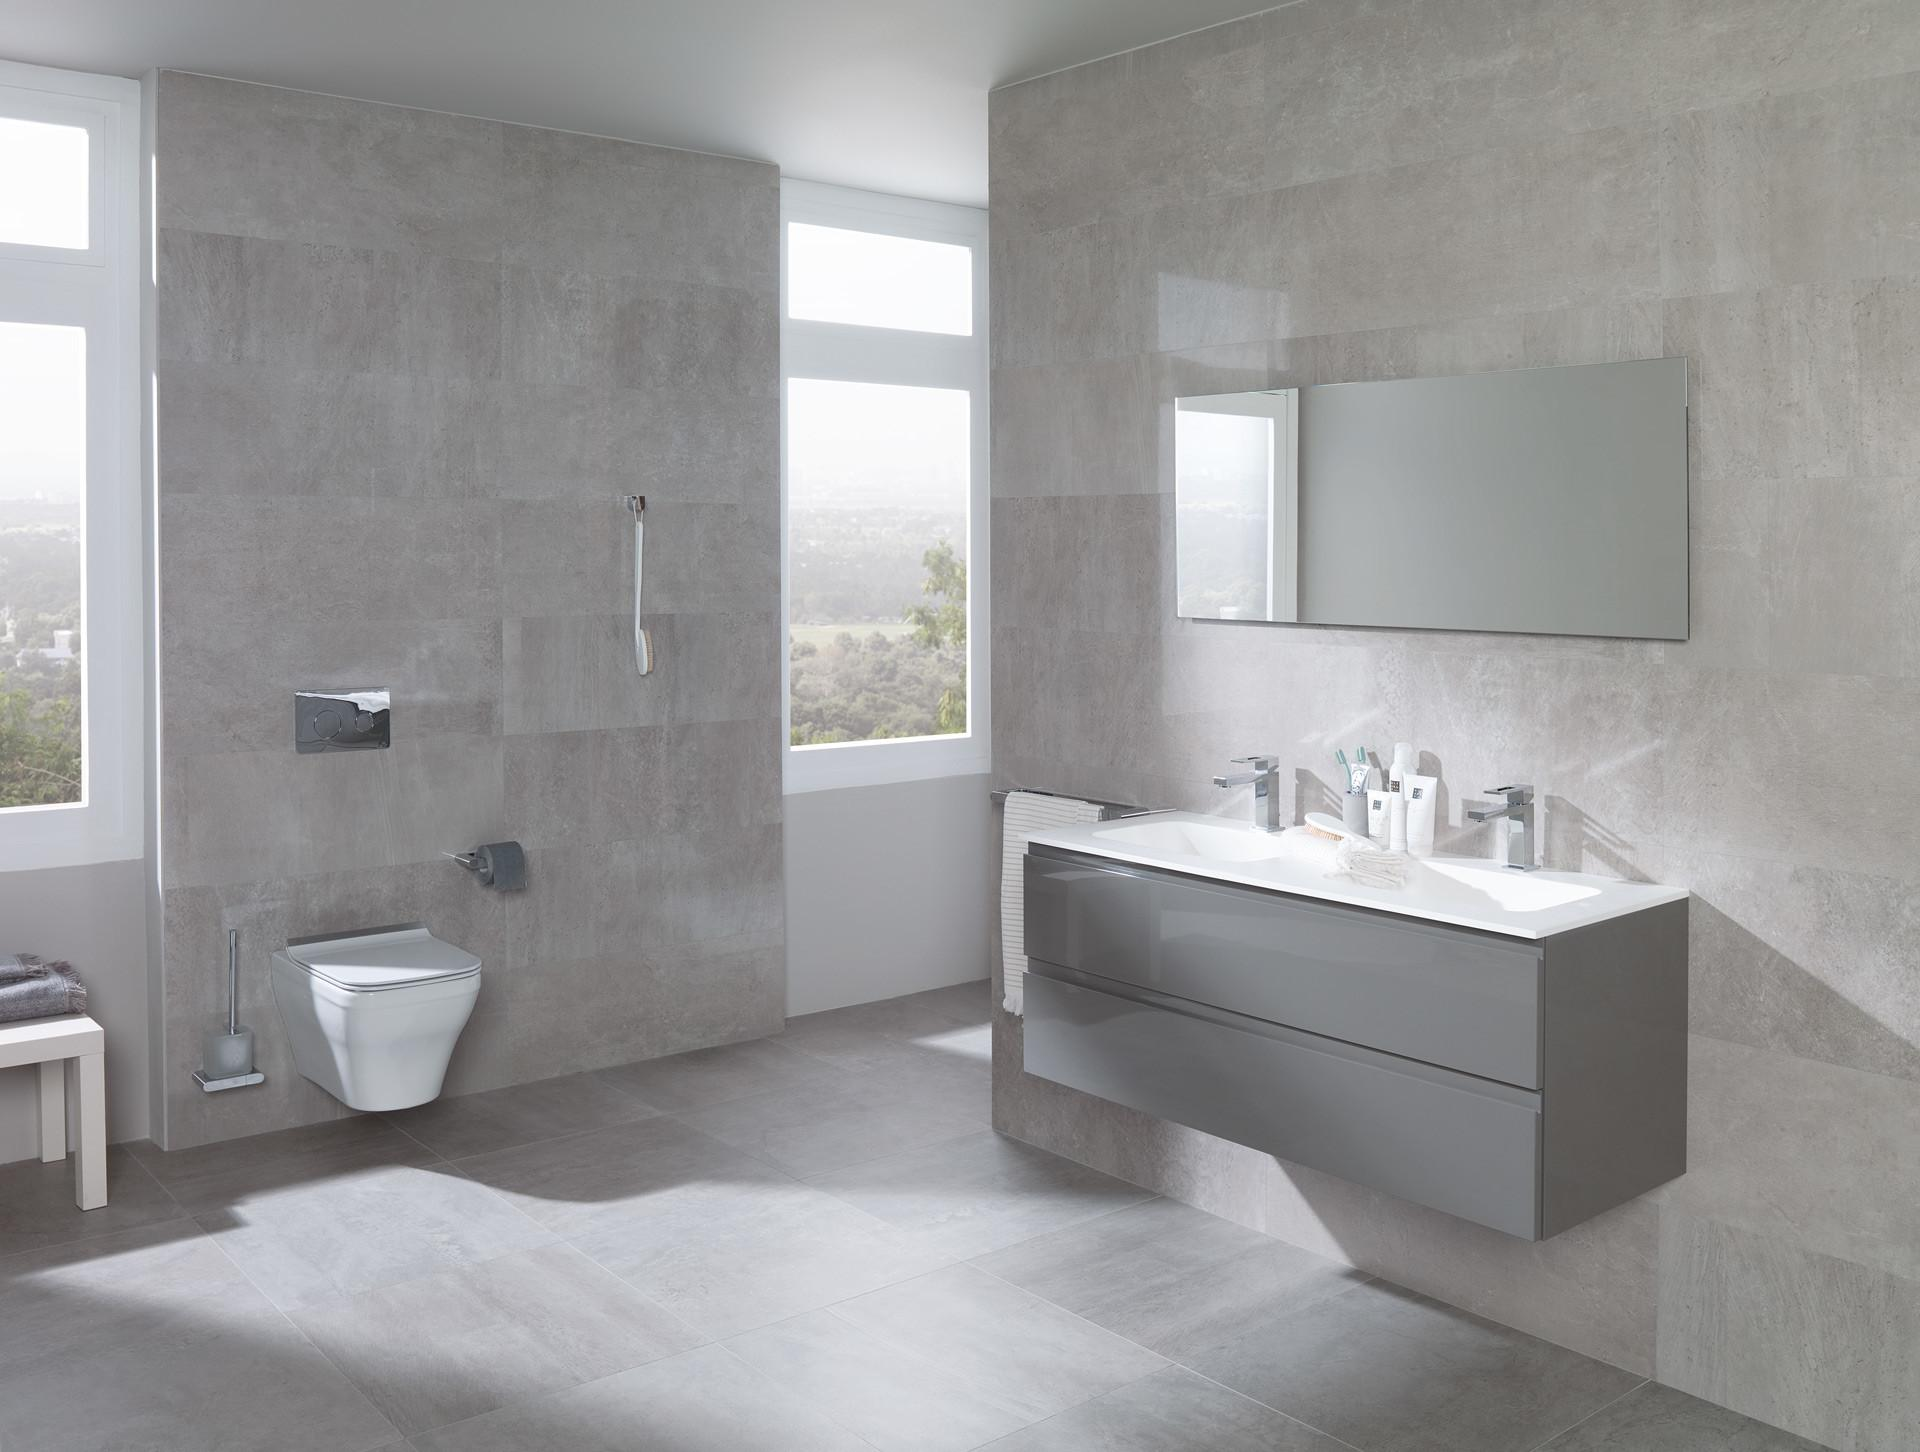 100 Porcelanosa Sink Floor Tiles